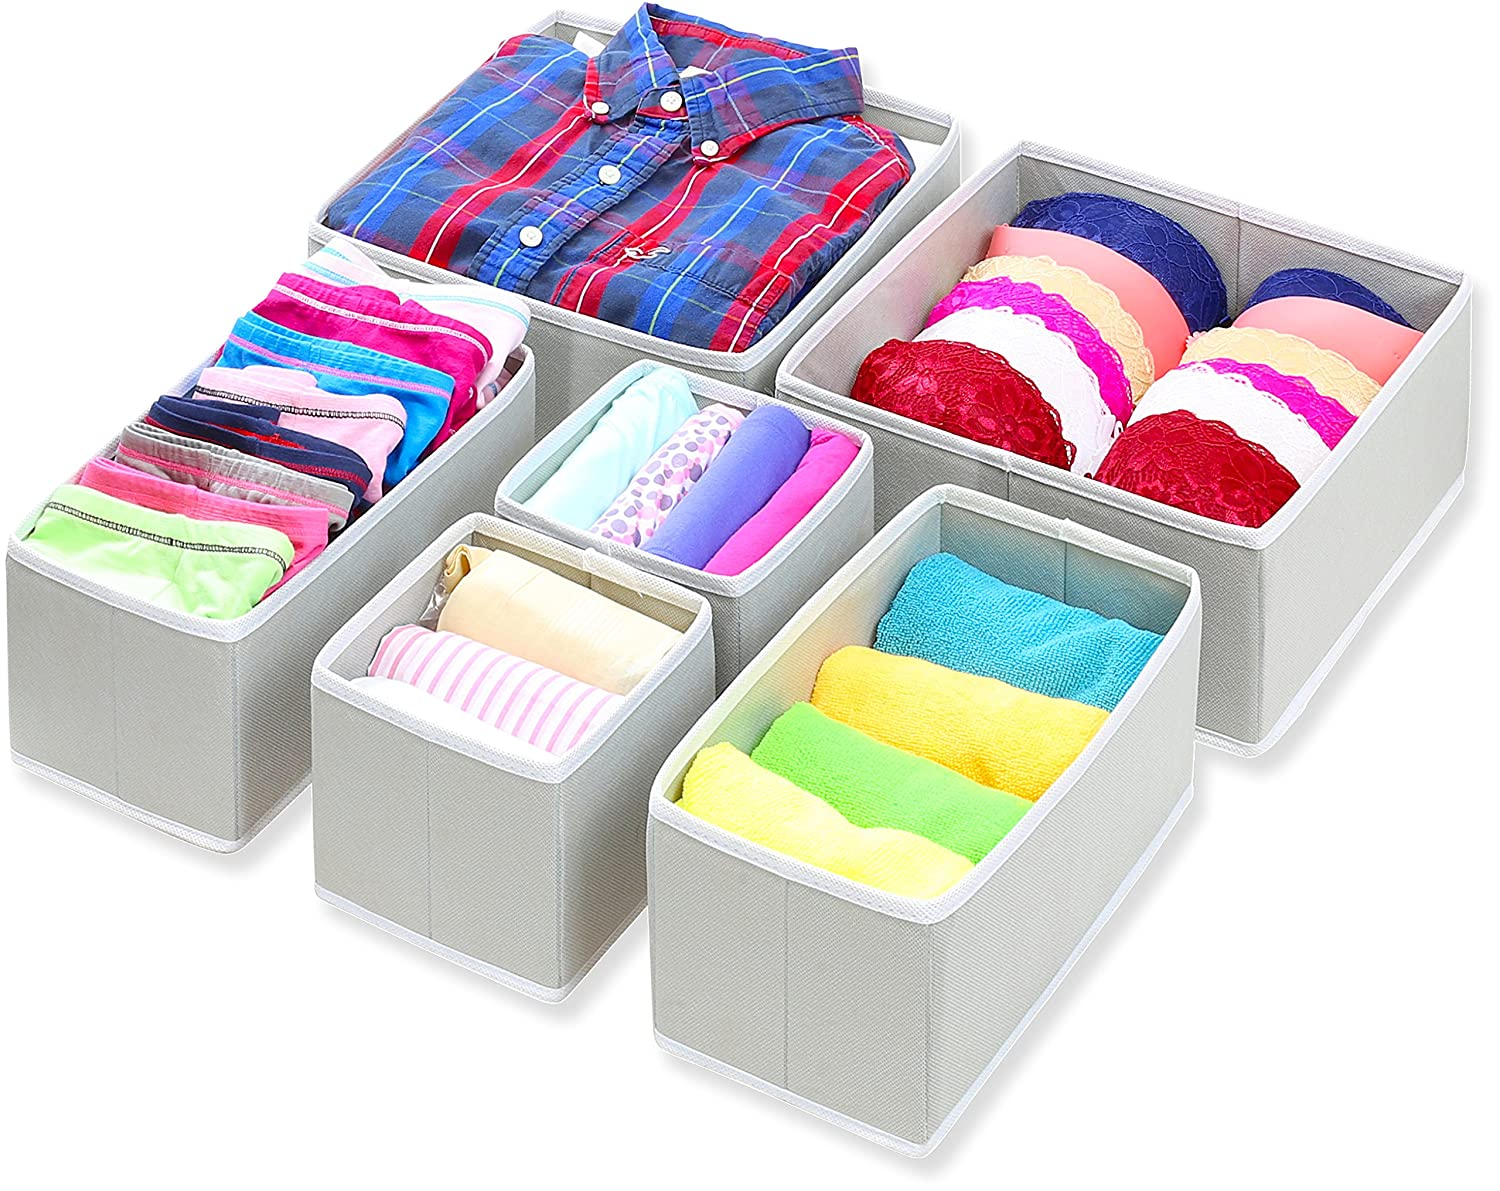 5 Amazon Home Organization Must Haves